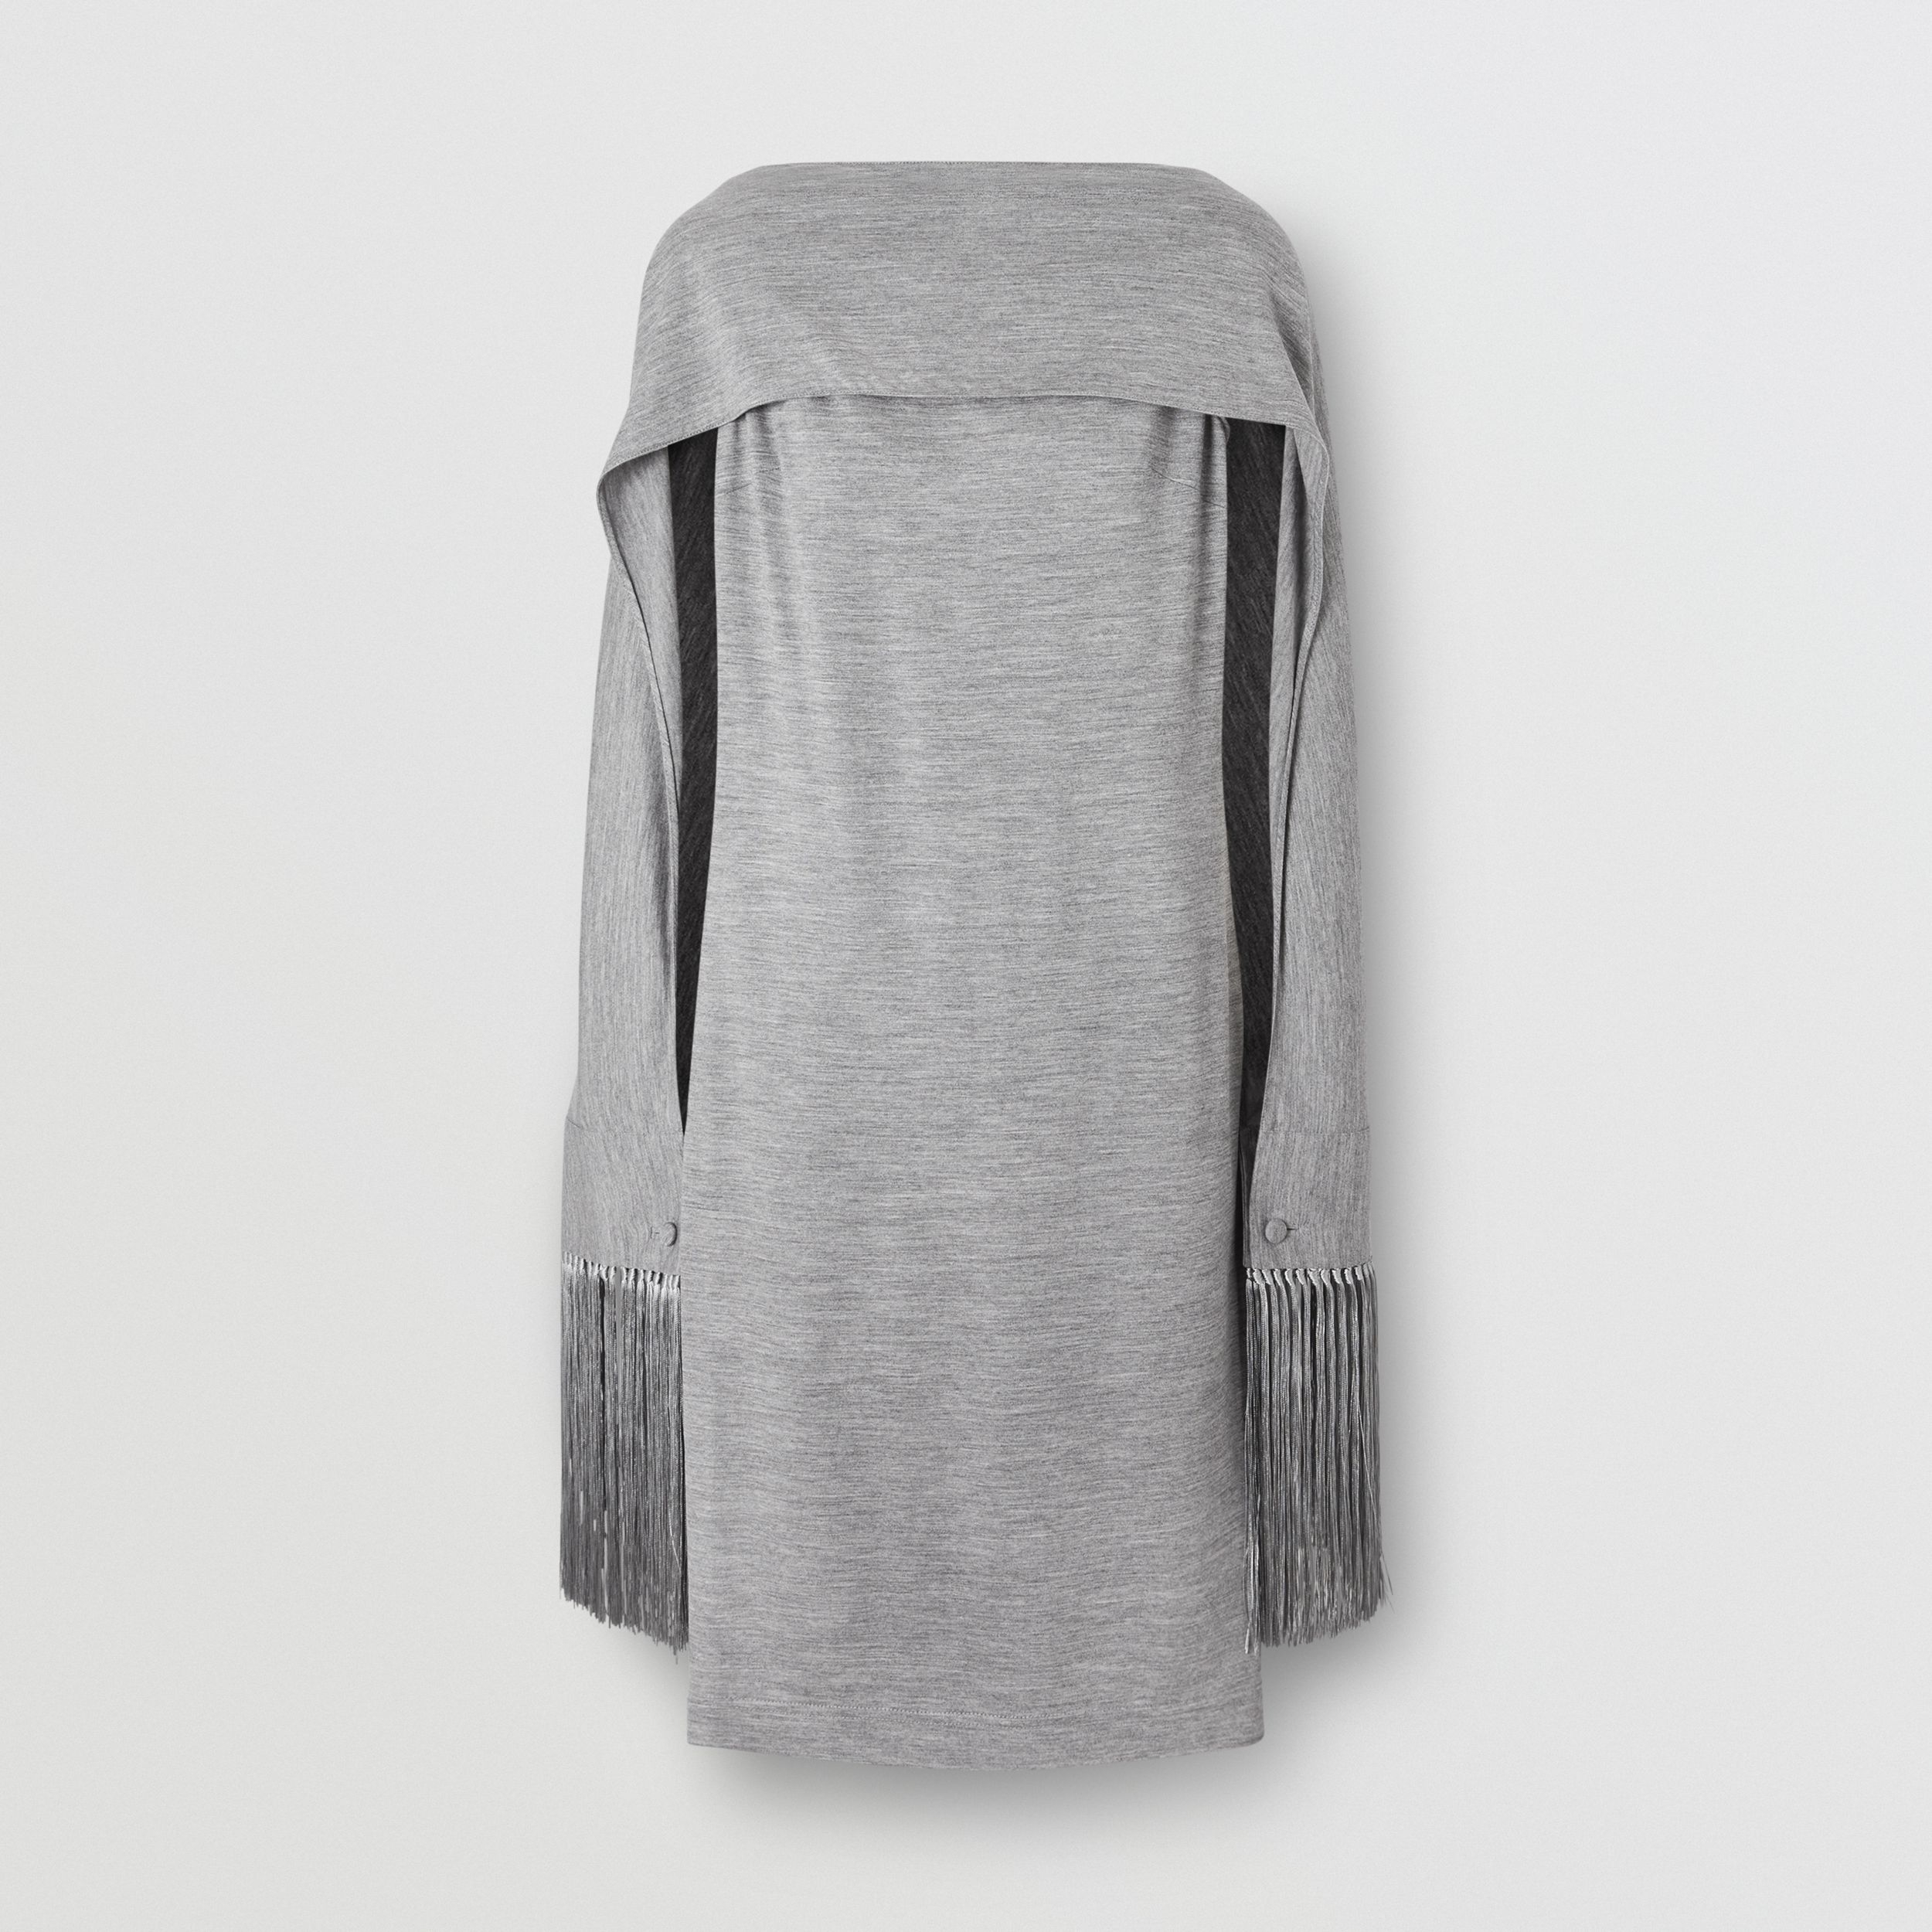 Merino Wool Sleeveless Dress with Fringed Capelet in Cloud Grey - Women | Burberry - 1